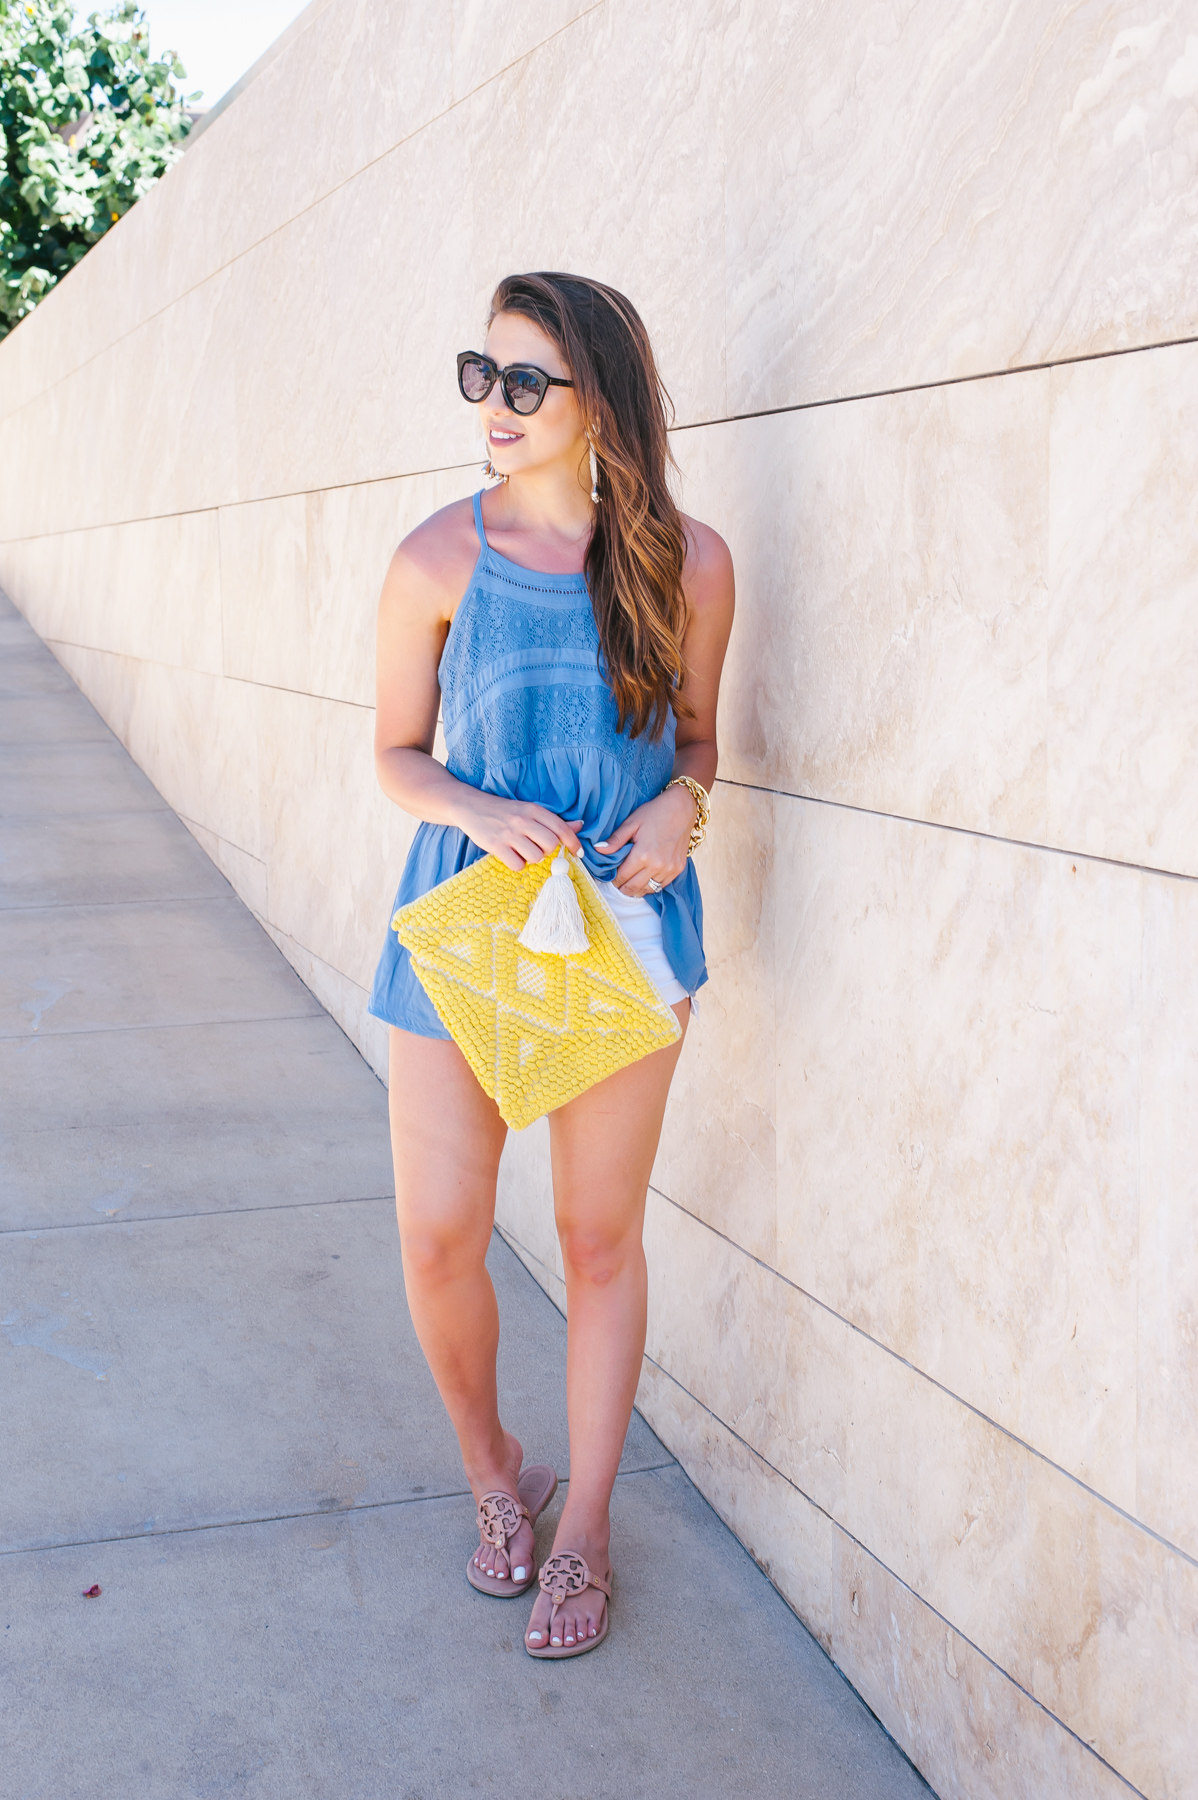 Dress Up Buttercup // A Houston-based fashion and inspiration blog developed to daily inspire your own personal style by Dede Raad | 35 Dollar Spring Top